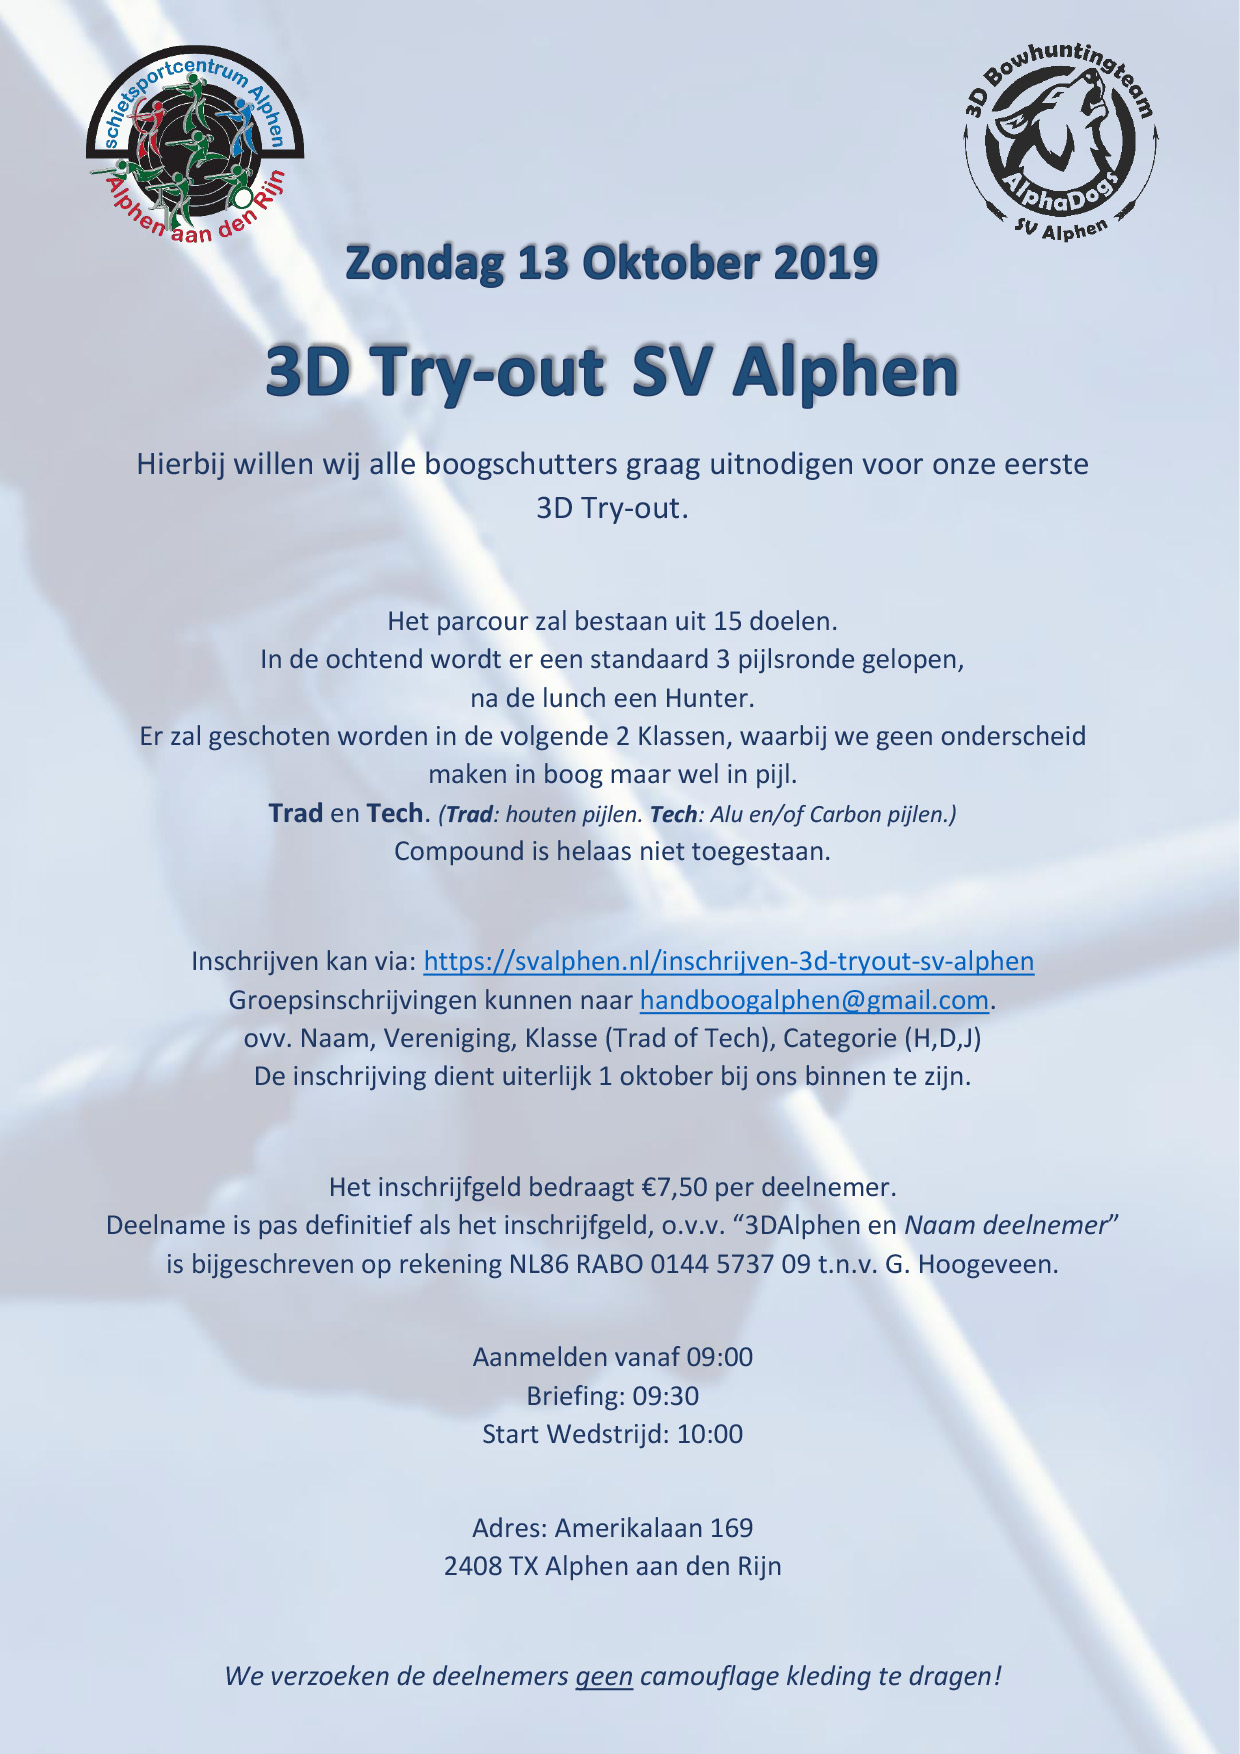 3D TryOut 13-10-2019